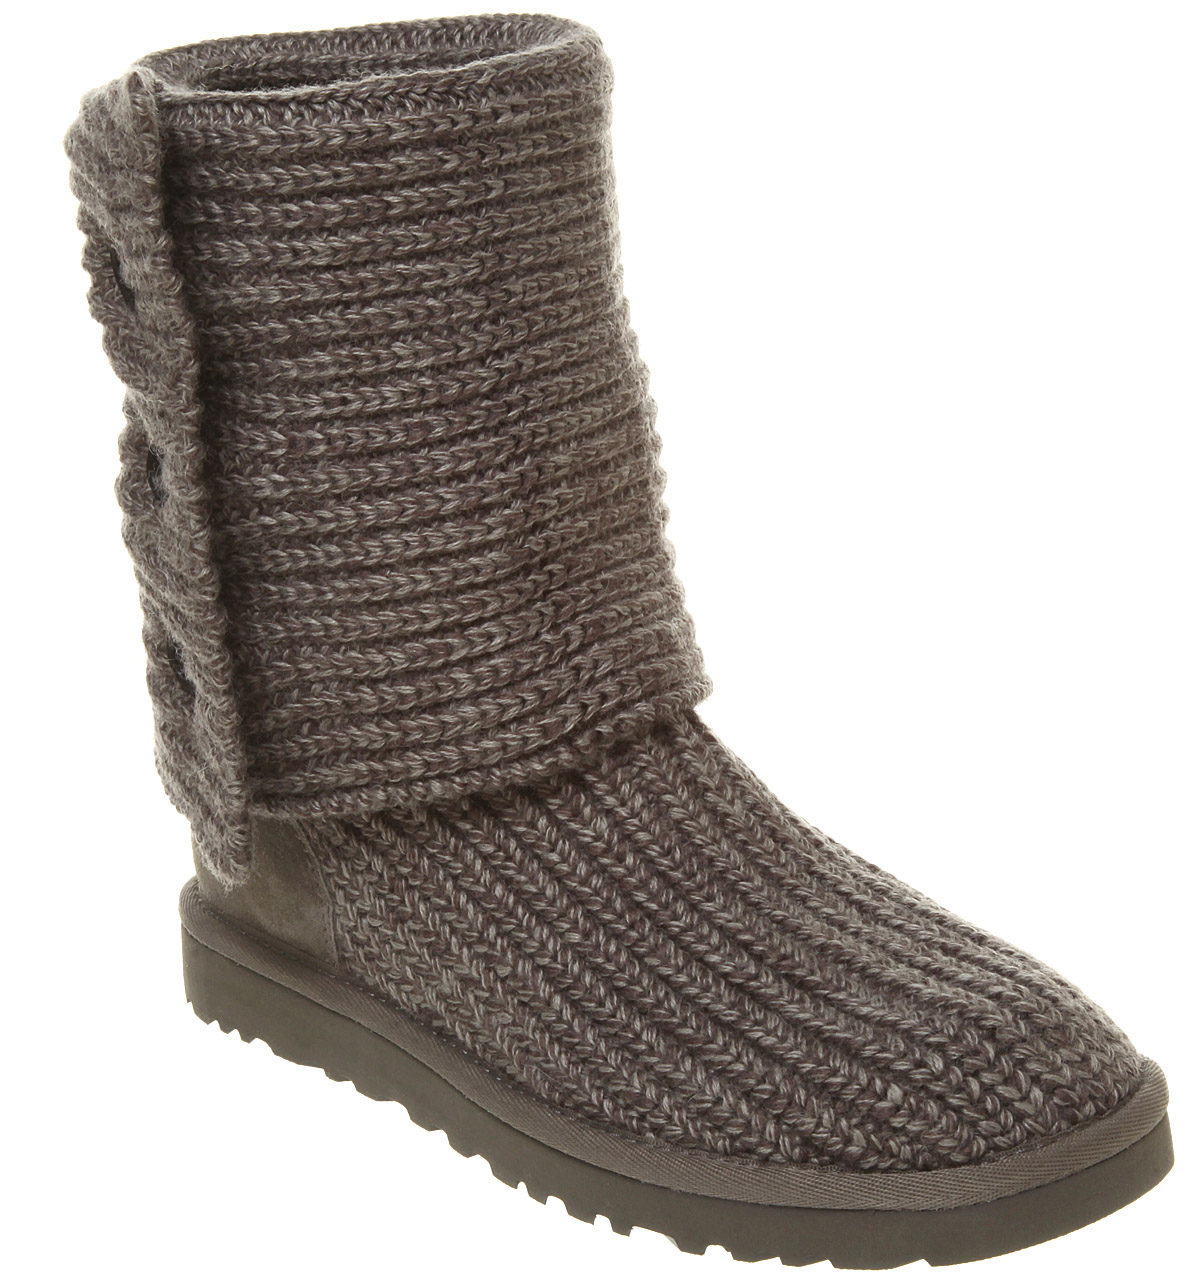 knitted boots 2017.7 ugg boots knitted WJSCVOO